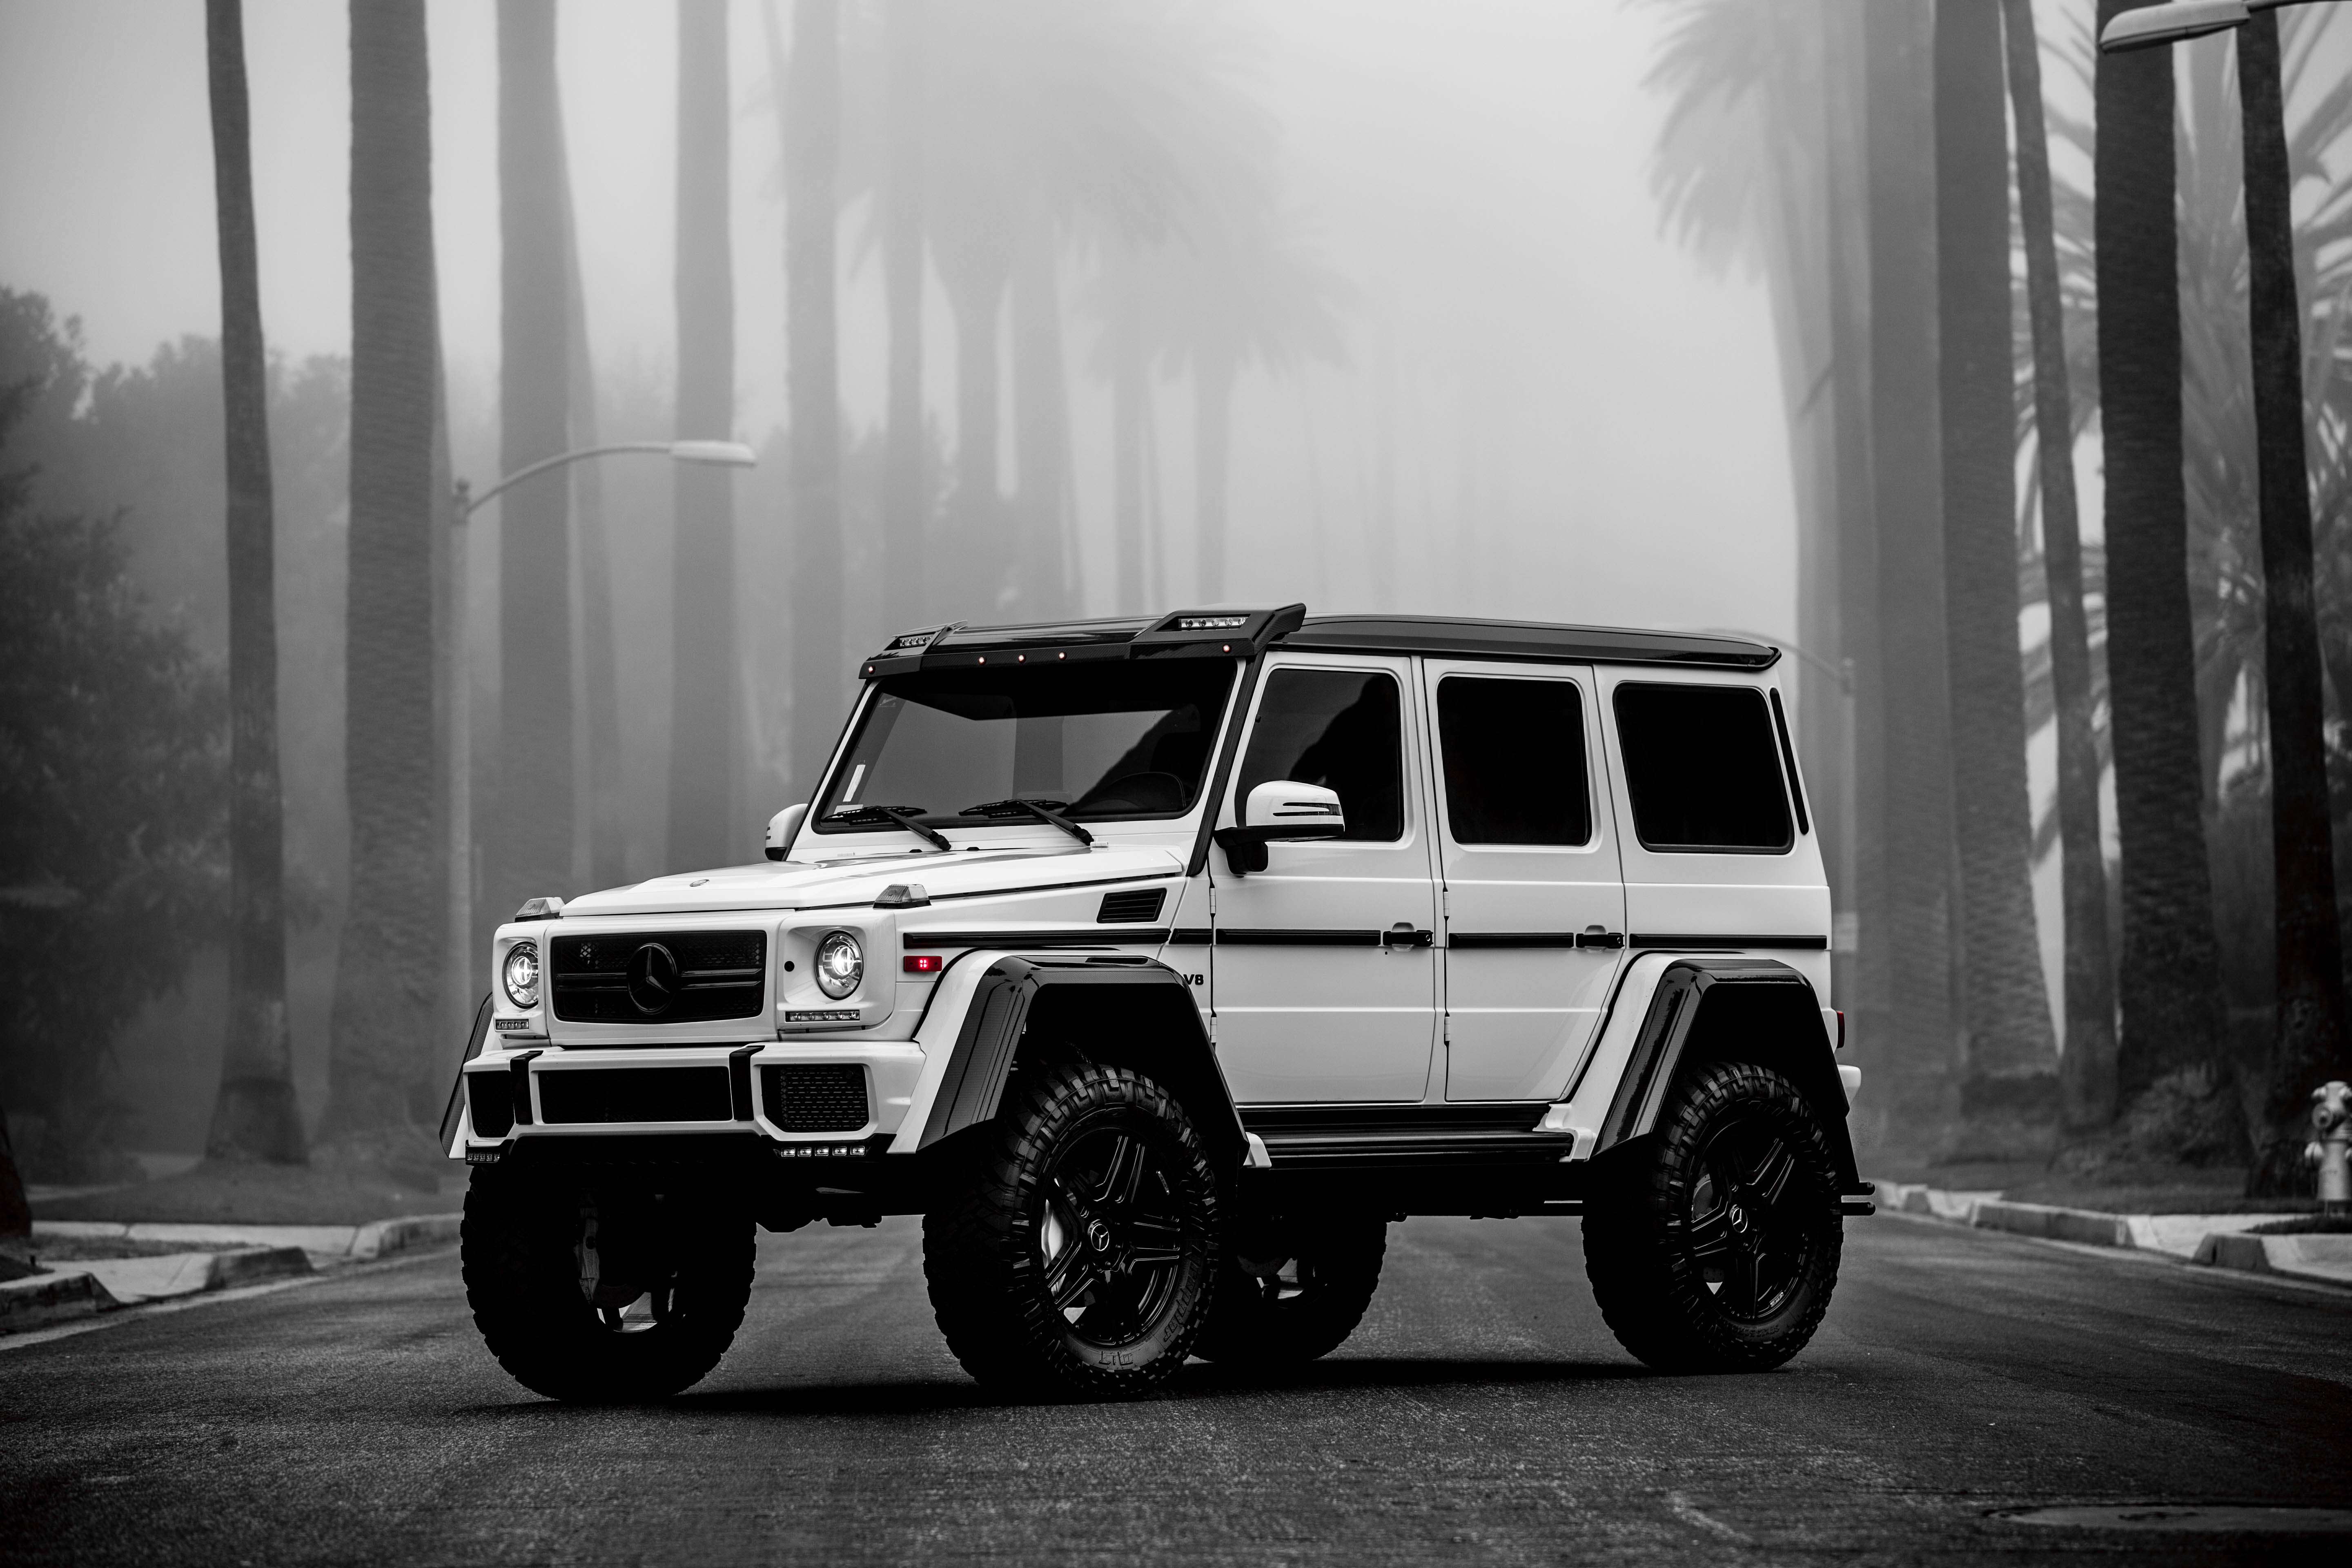 Mercedes G Wagon Wallpaper Posted By Ethan Mercado